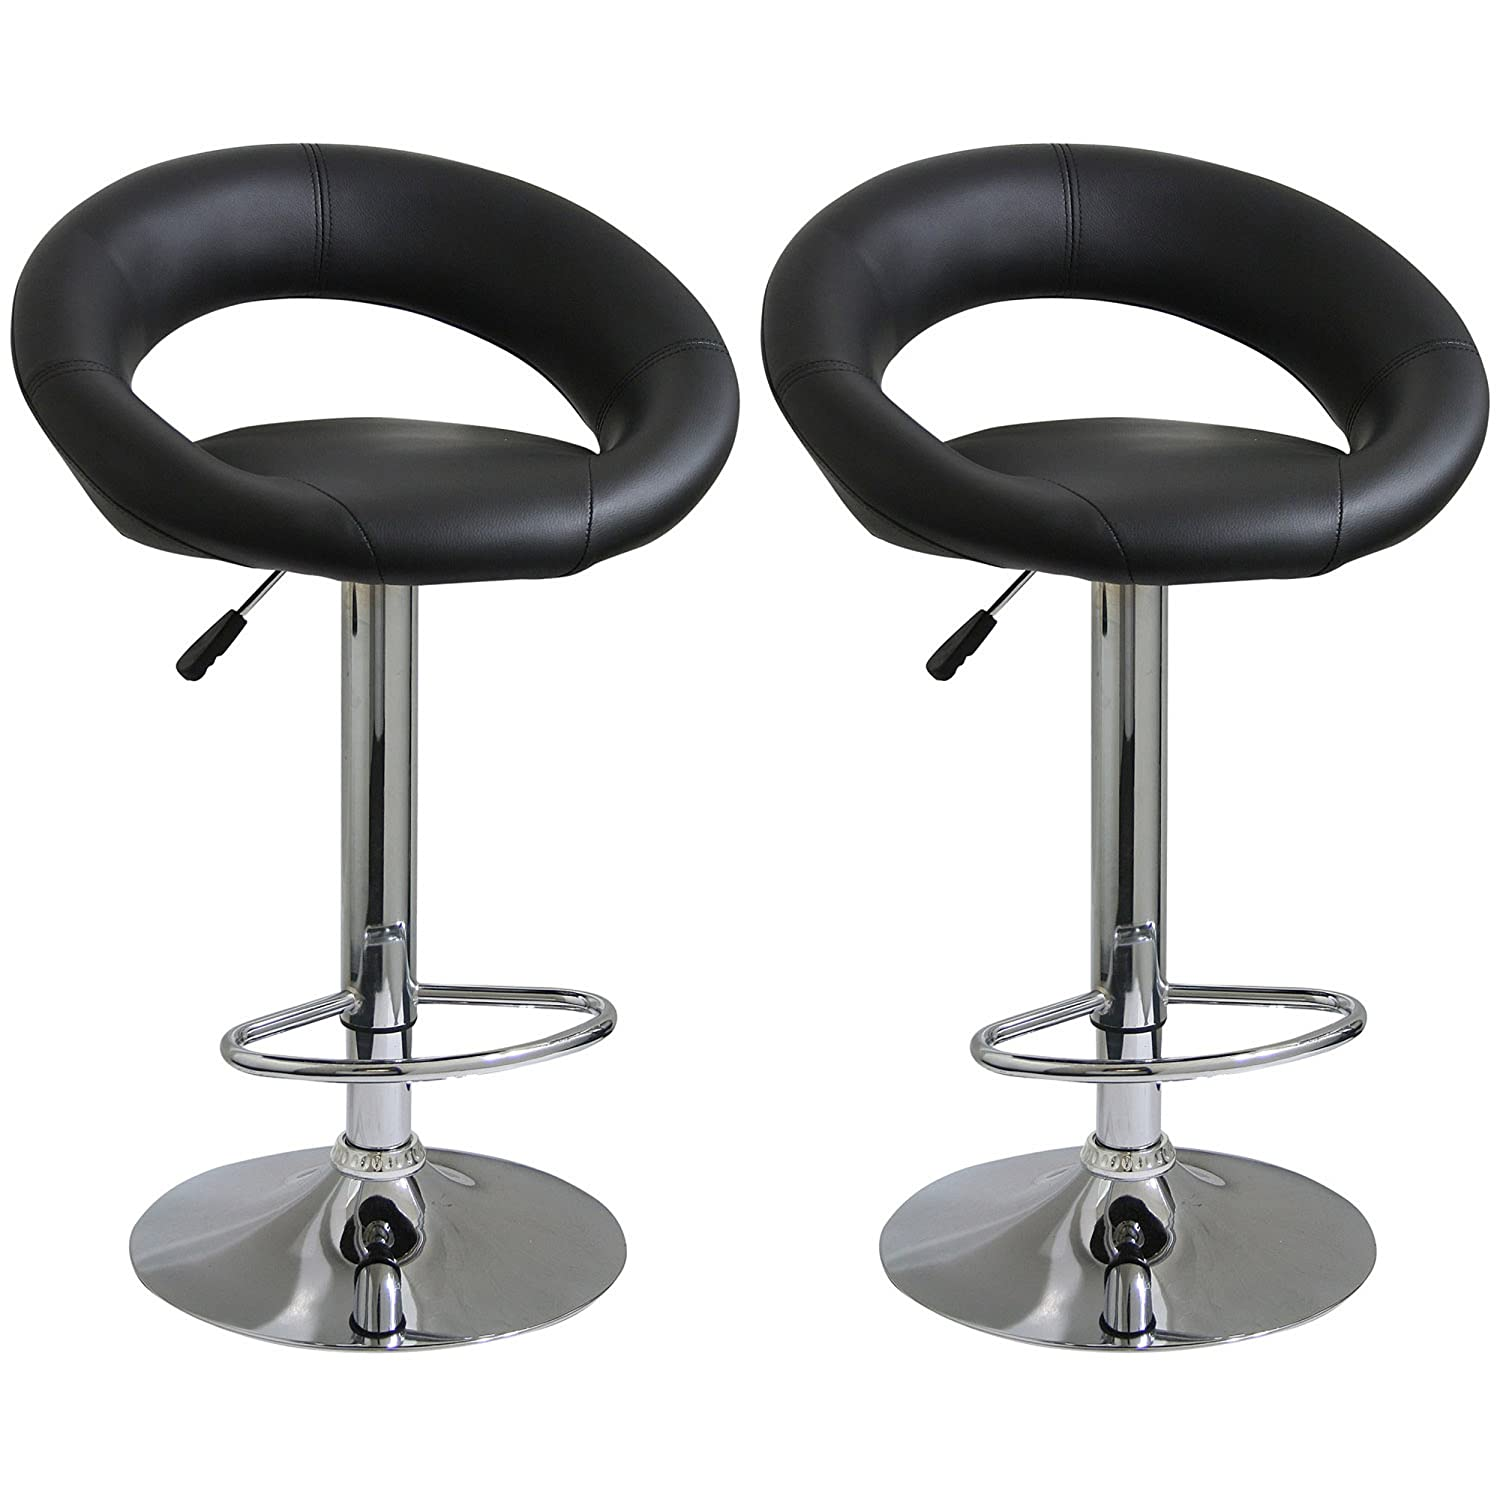 Bar Stool Set 2 Piece Adjustable Height Seat Chair Swivel  : 71IVeu2XIrLSL1500 from www.ebay.com size 1500 x 1500 jpeg 156kB